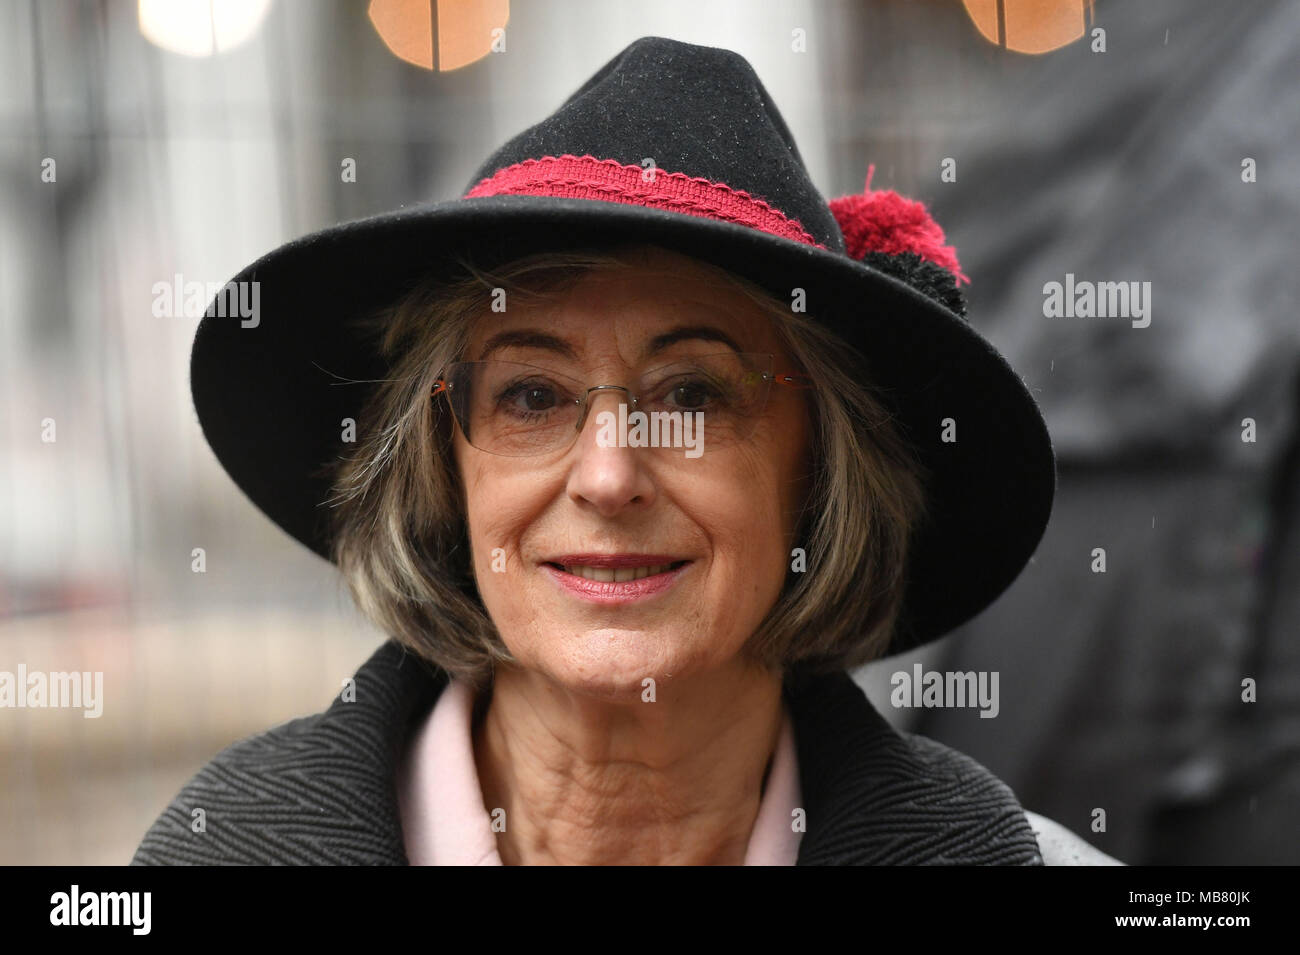 Maureen Lipman speaking at a demonstration organised by the Campaign Against Antisemitism outside the Labour Party headquarters in central London, against alleged prejudice in the Labour Party, amid a row over the party's handling of claims of anti-semitism. - Stock Image